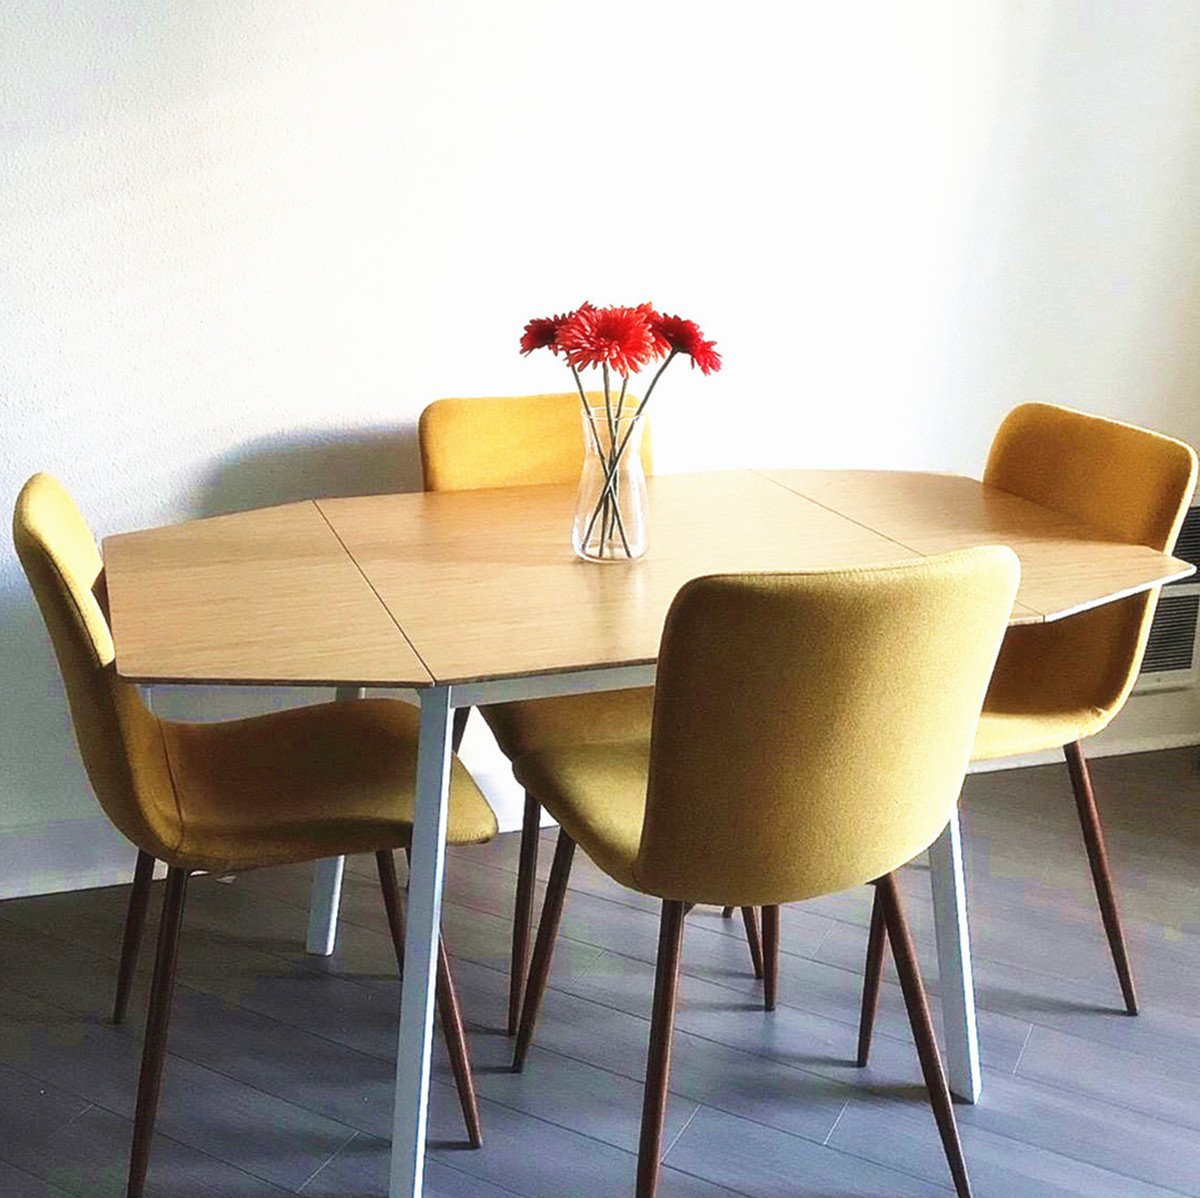 Coavas Set of 4 Dining Chairs Fabric Cushion Kitchen Side Chairs with Sturdy Metal Legs for Dining Room, Yellow by Coavas (Image #4)